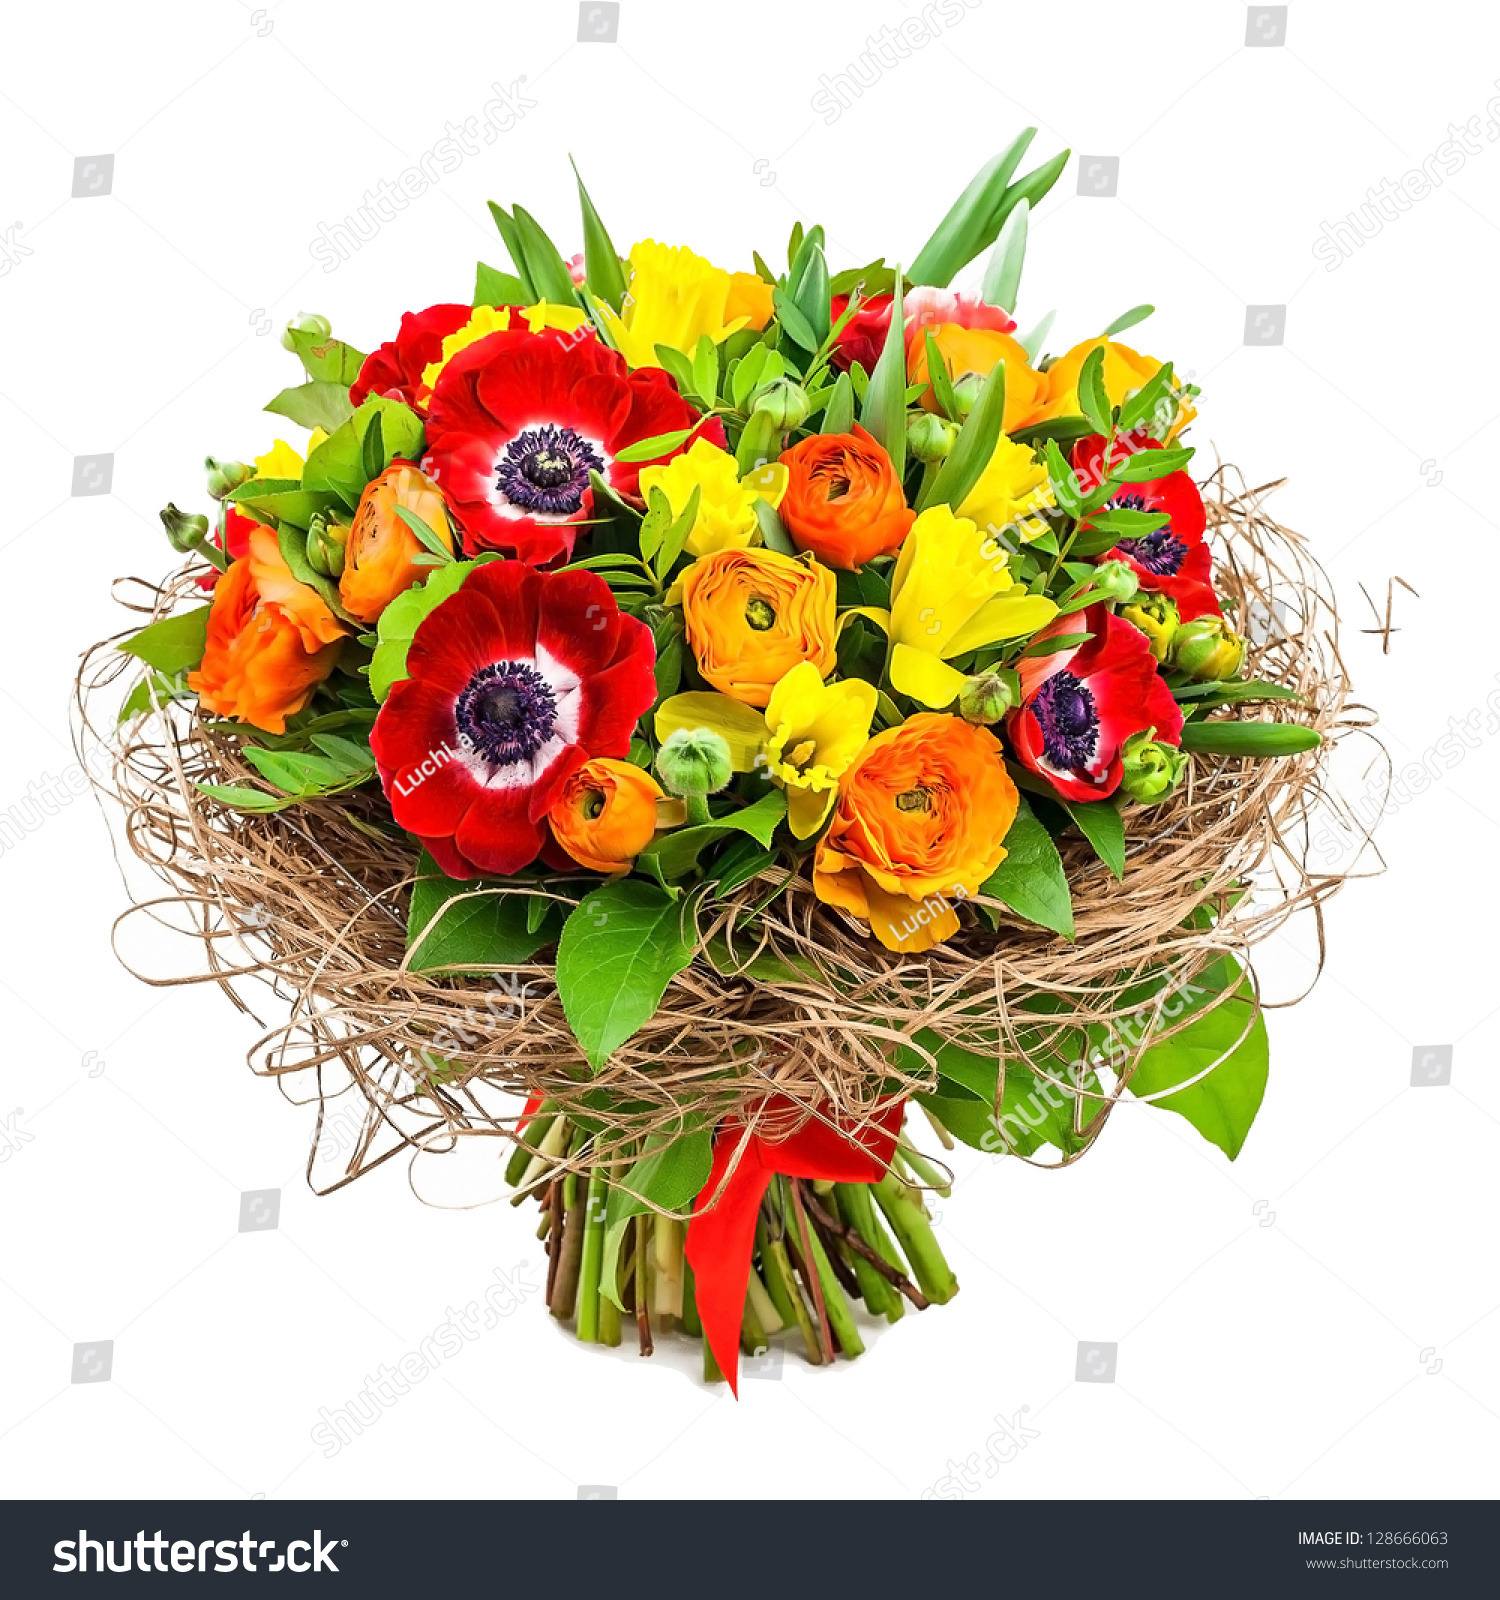 Bouquet flowers vase stock photo 128666063 shutterstock for Images of bouquets of roses